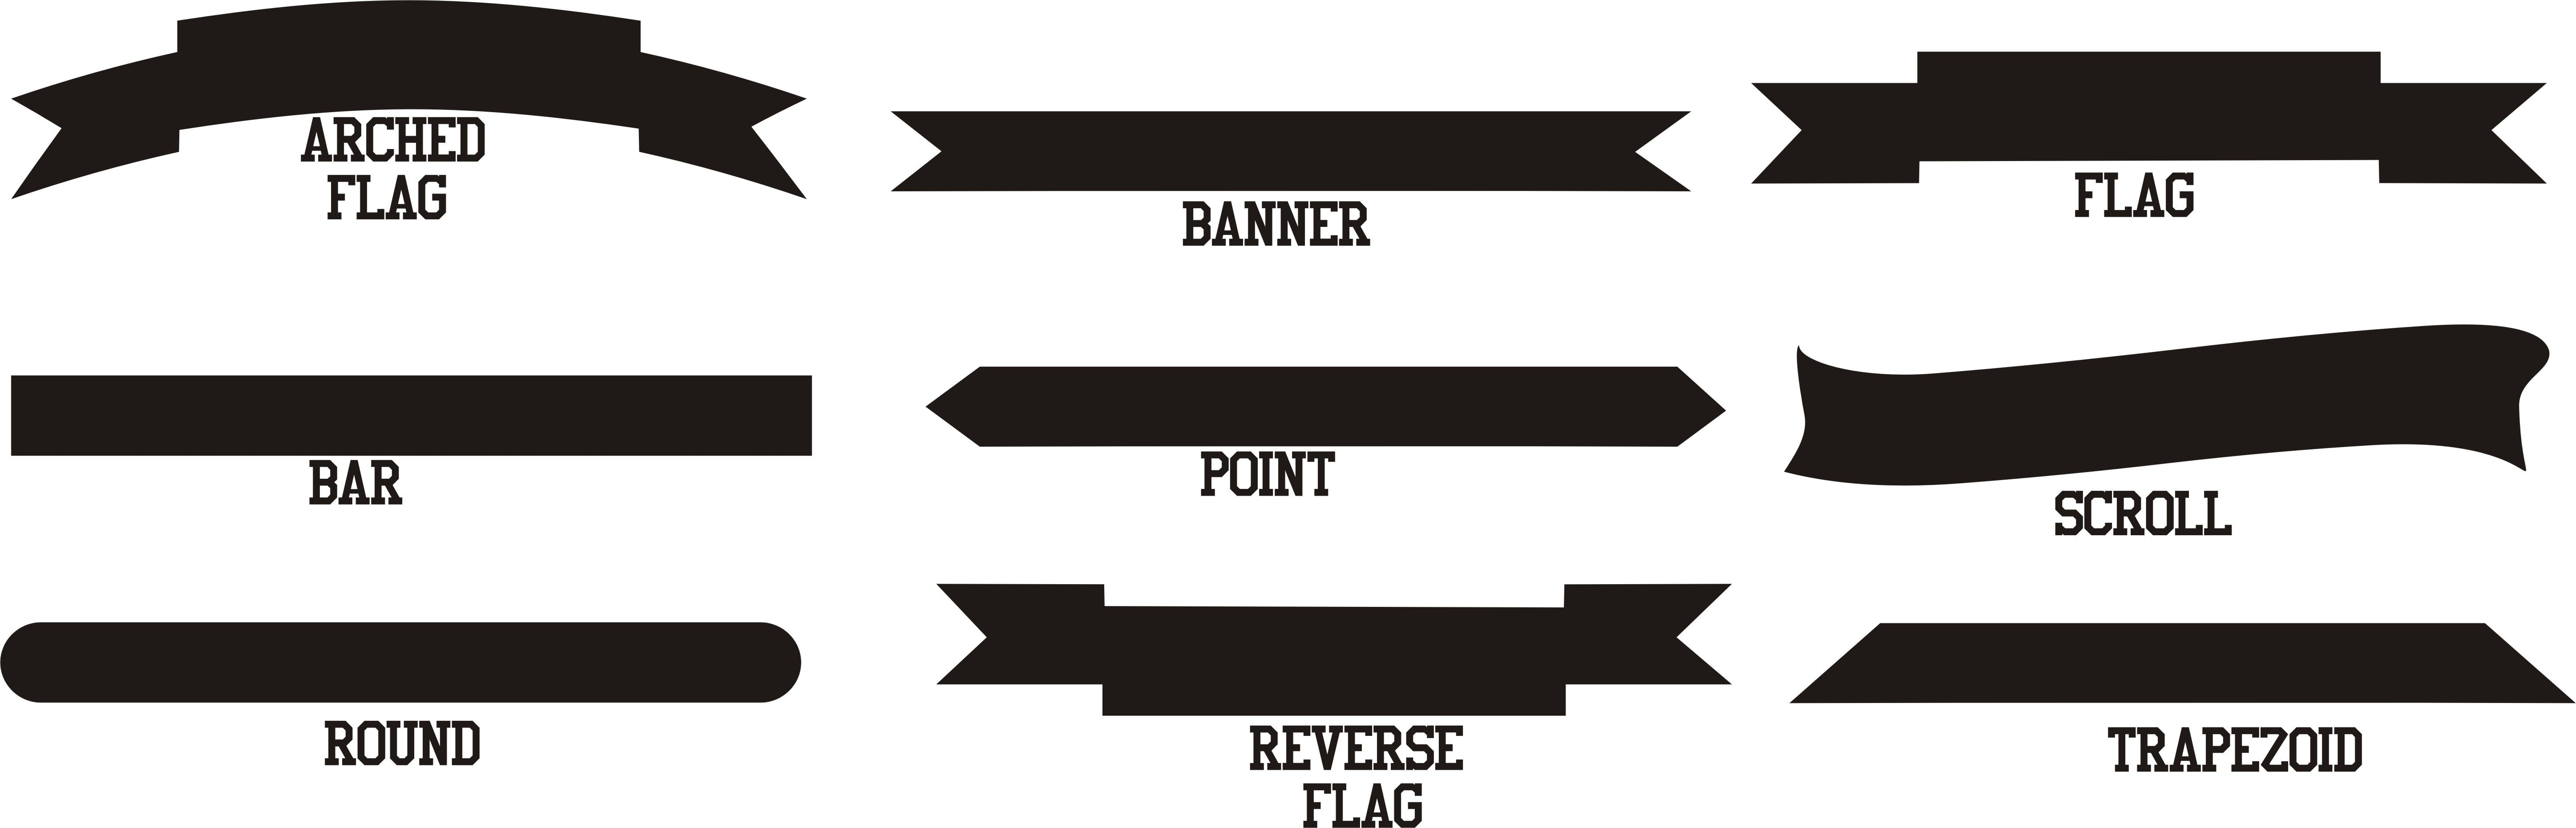 Tails and Banners | Freelance Design Resources | Pinterest | Banners